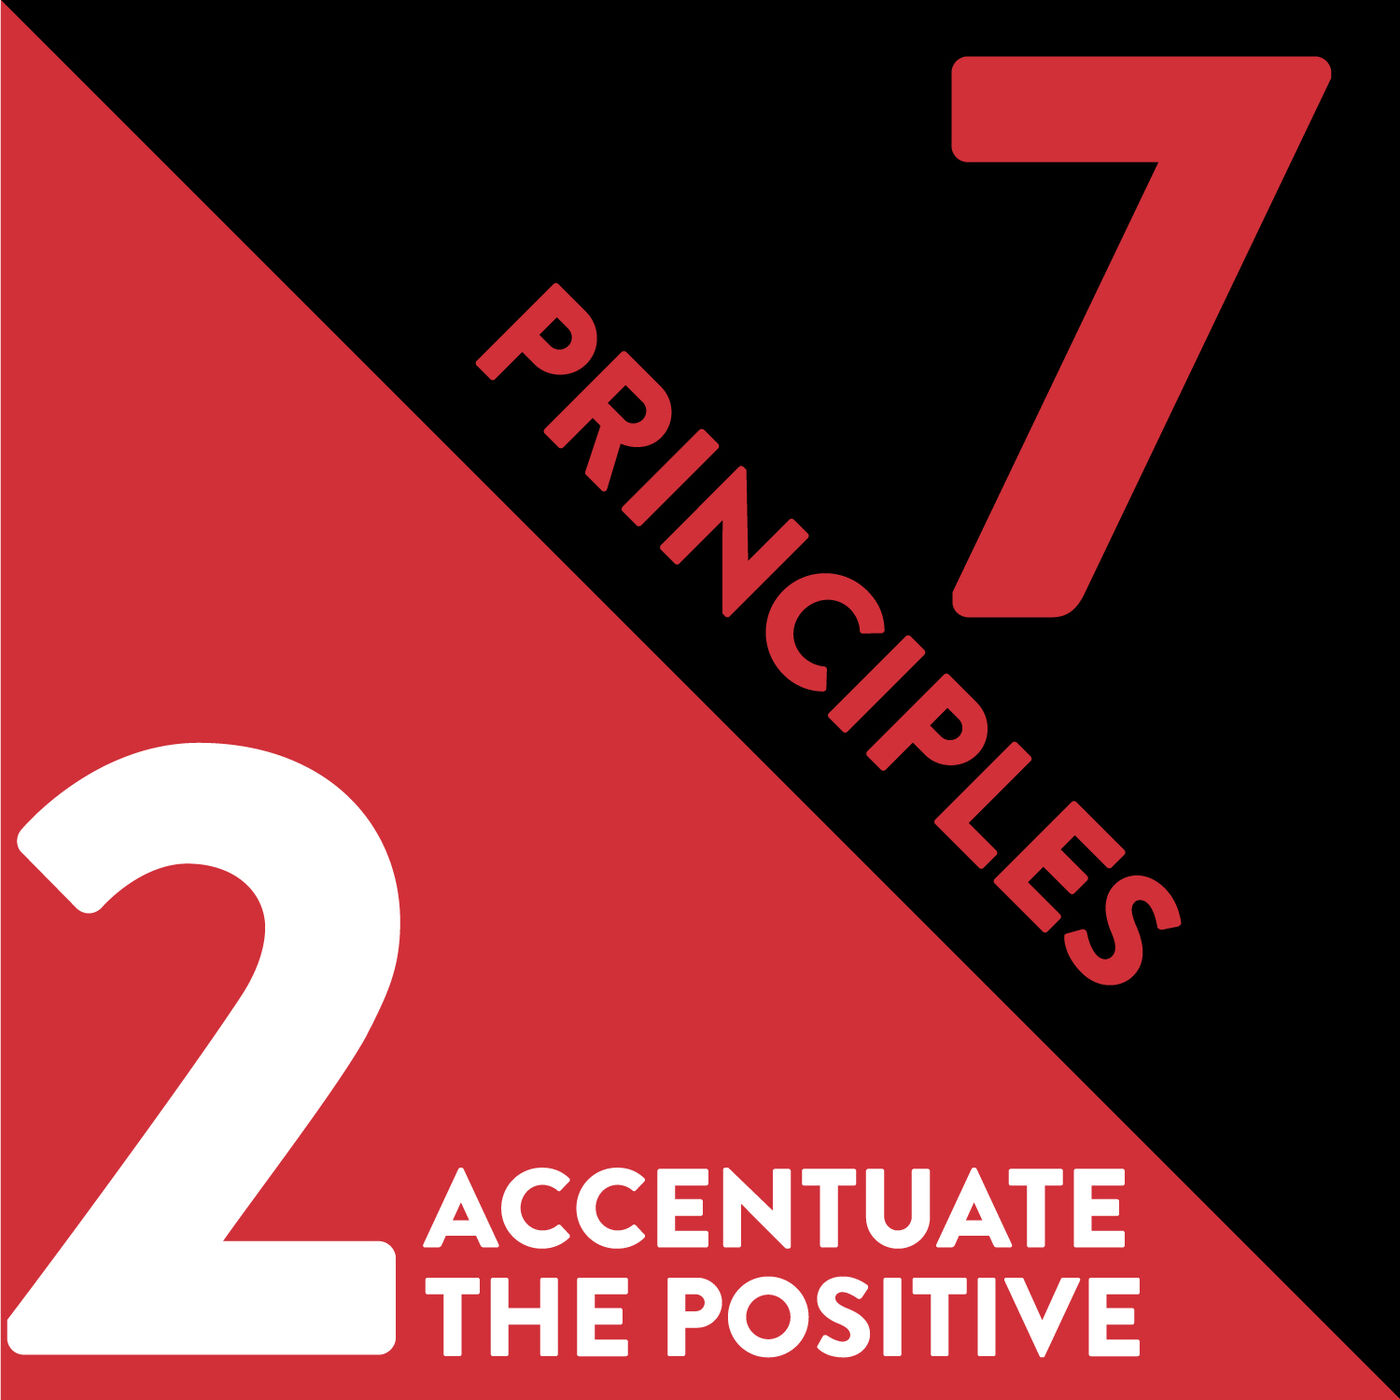 Accentuate the Positive: The Second Principle of Relationship Management